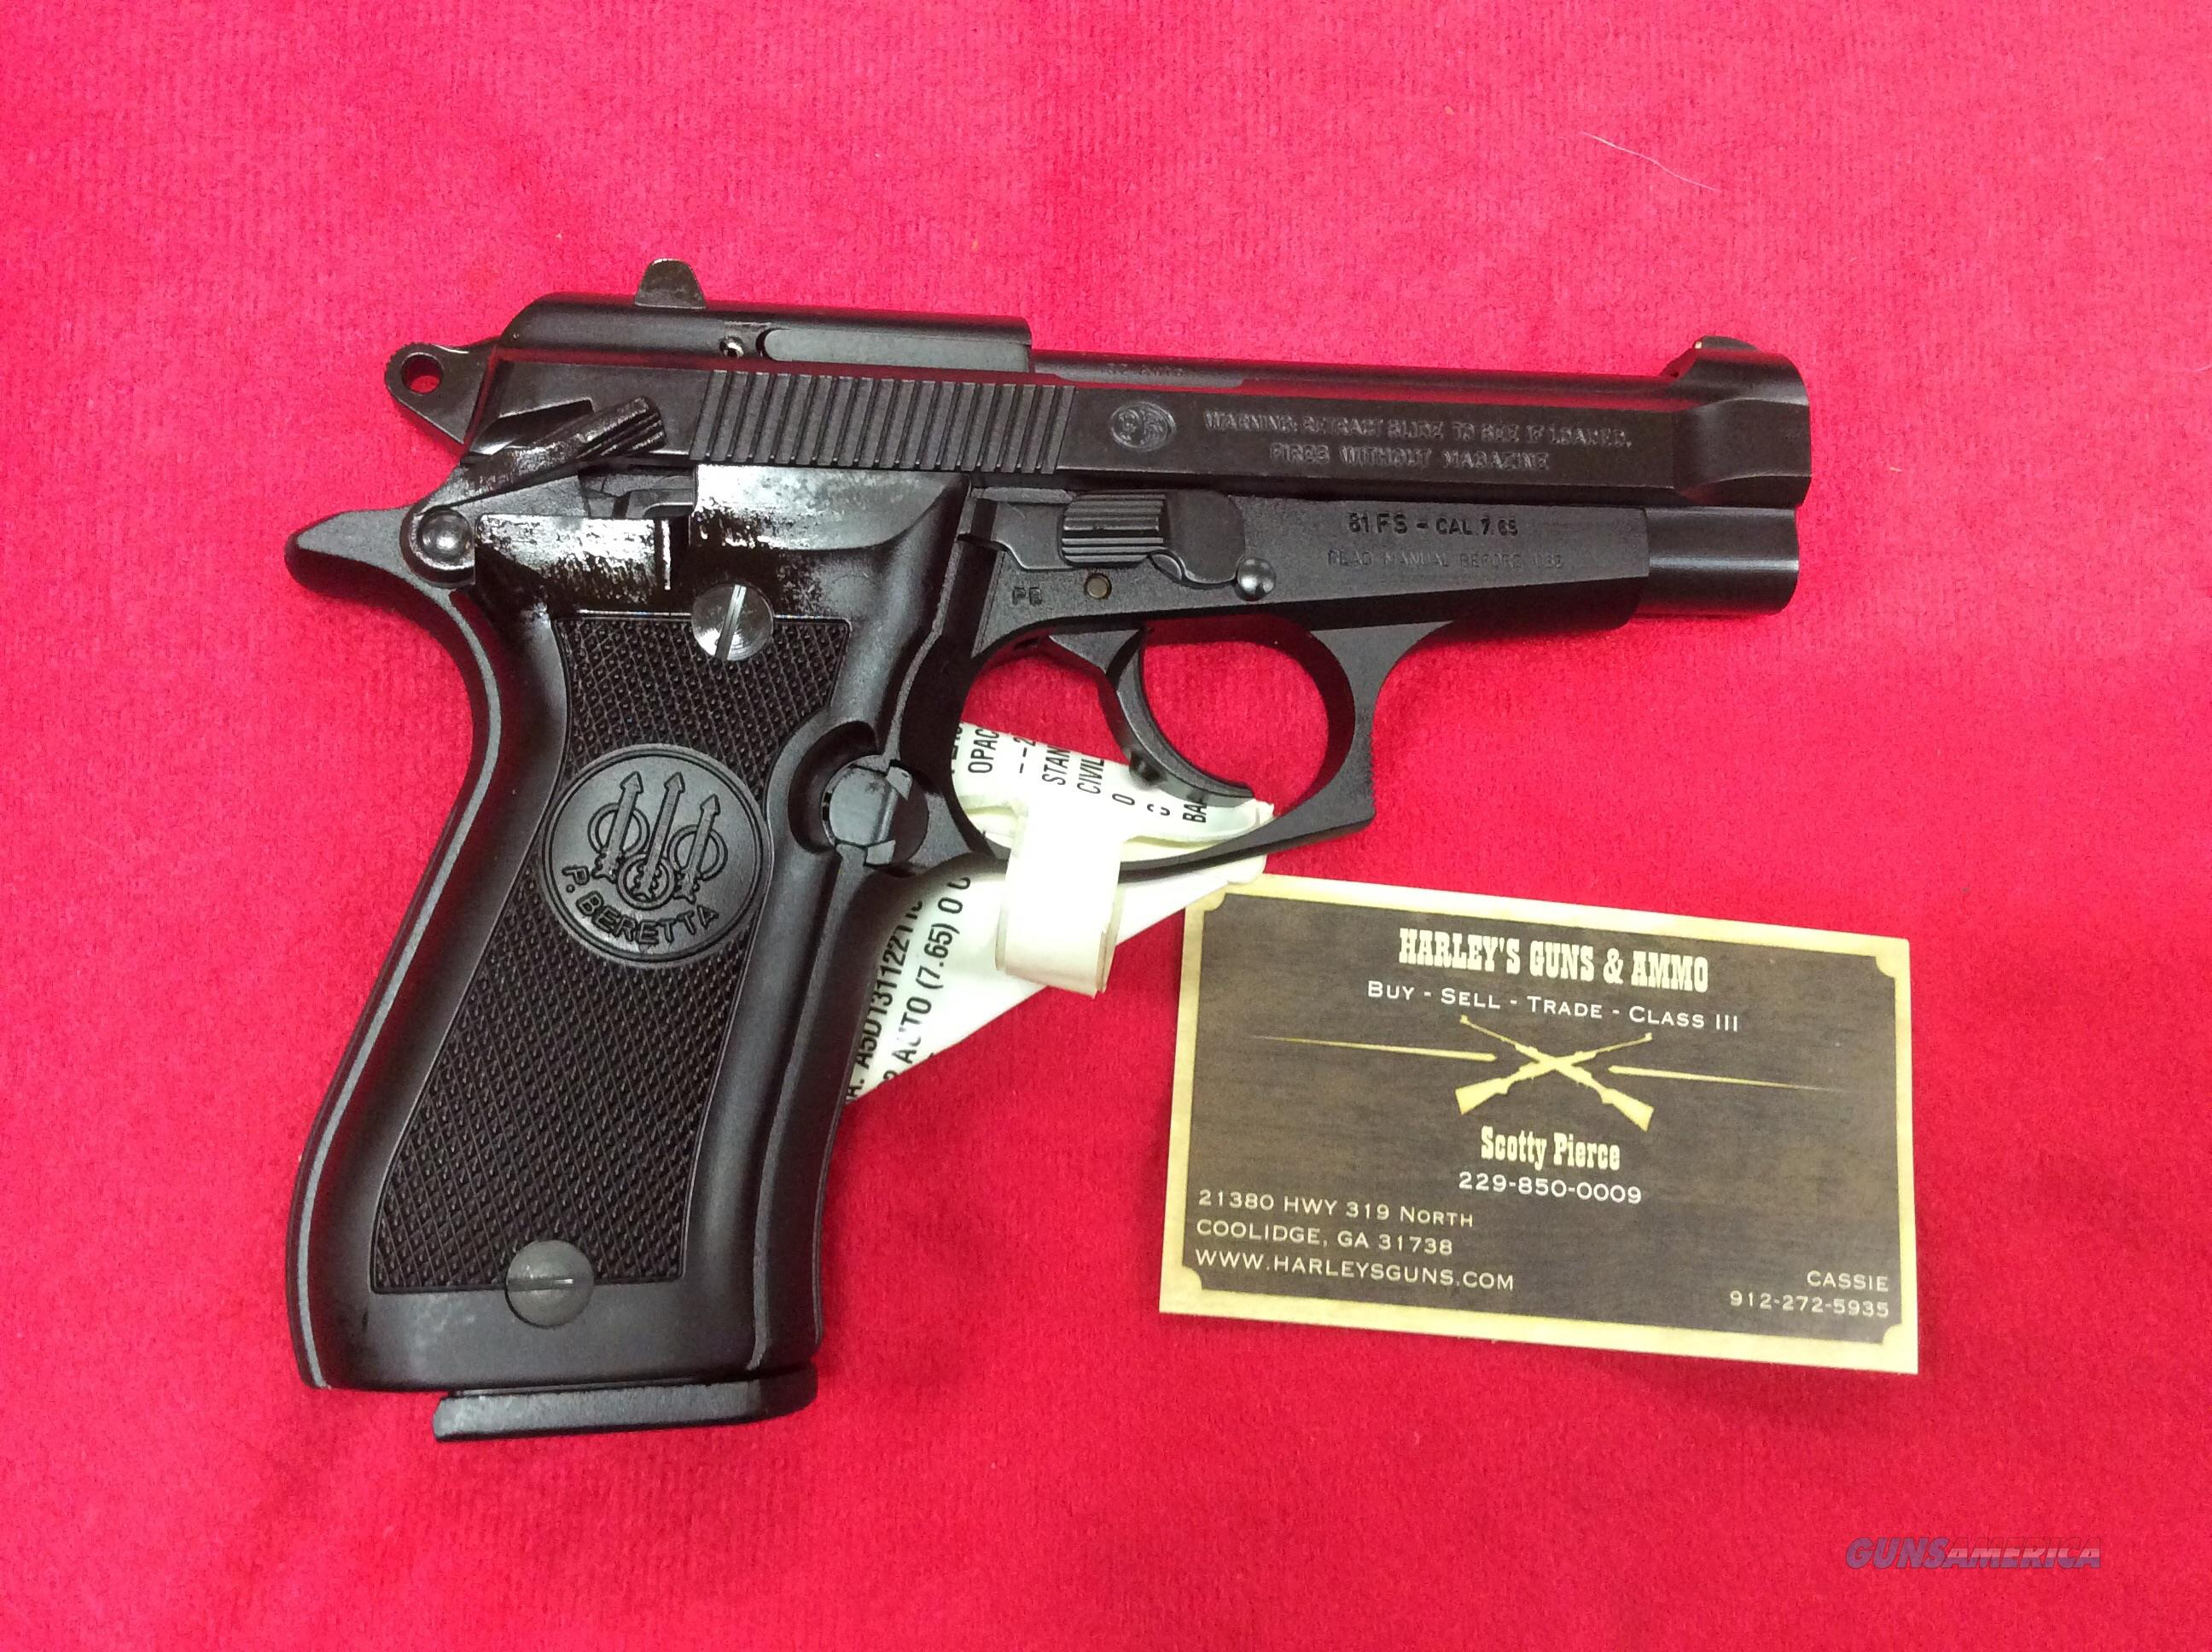 Beretta 81 Cheetah .32auto  Guns > Pistols > Beretta Pistols > Cheetah Series > Model 81